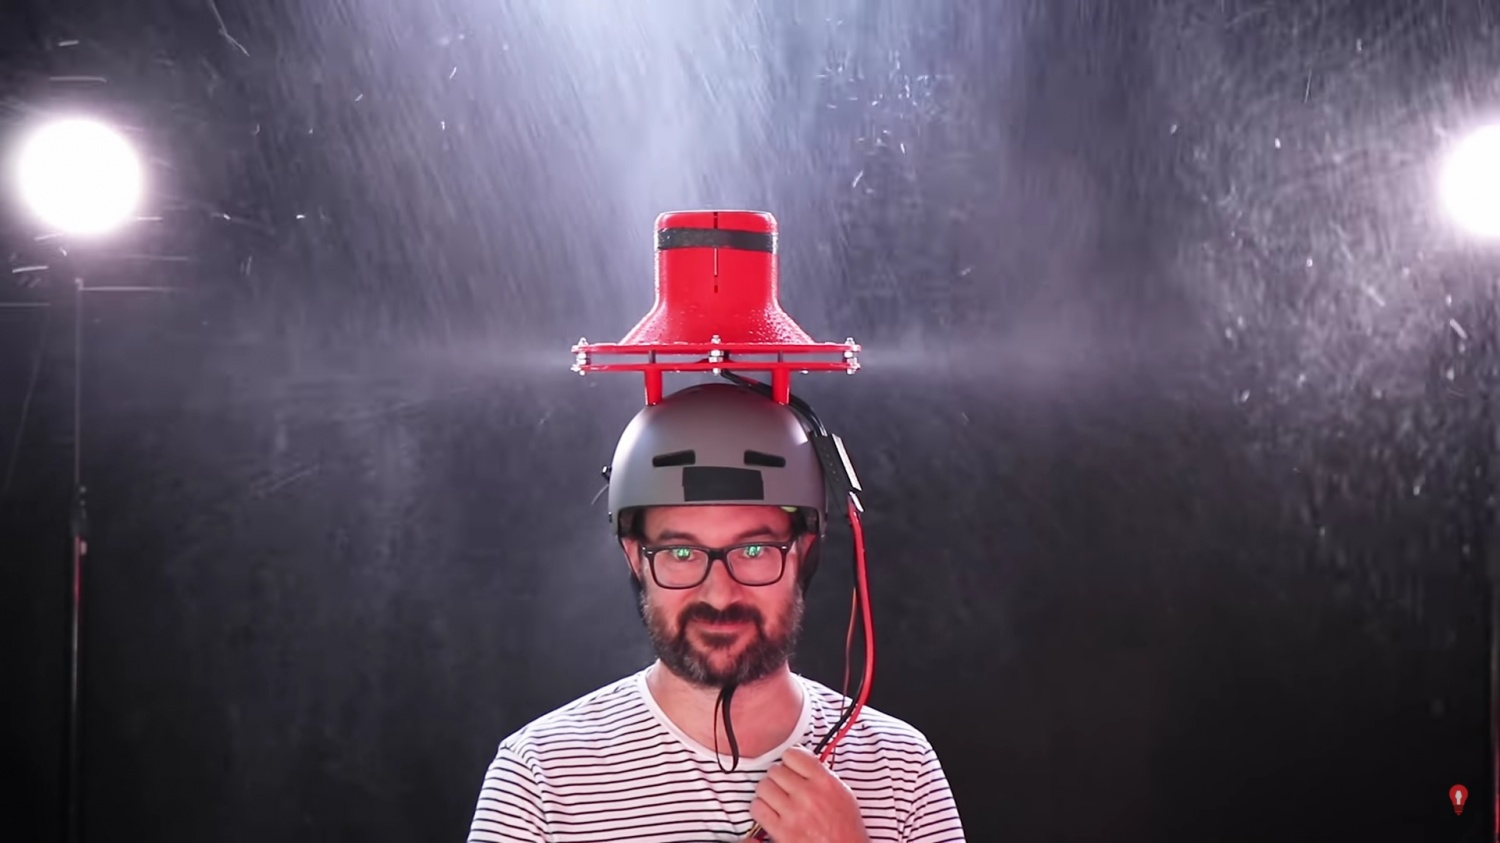 This 3D Printed Turbine Umbrella Hat Will Keep You Dry During Rainy Days